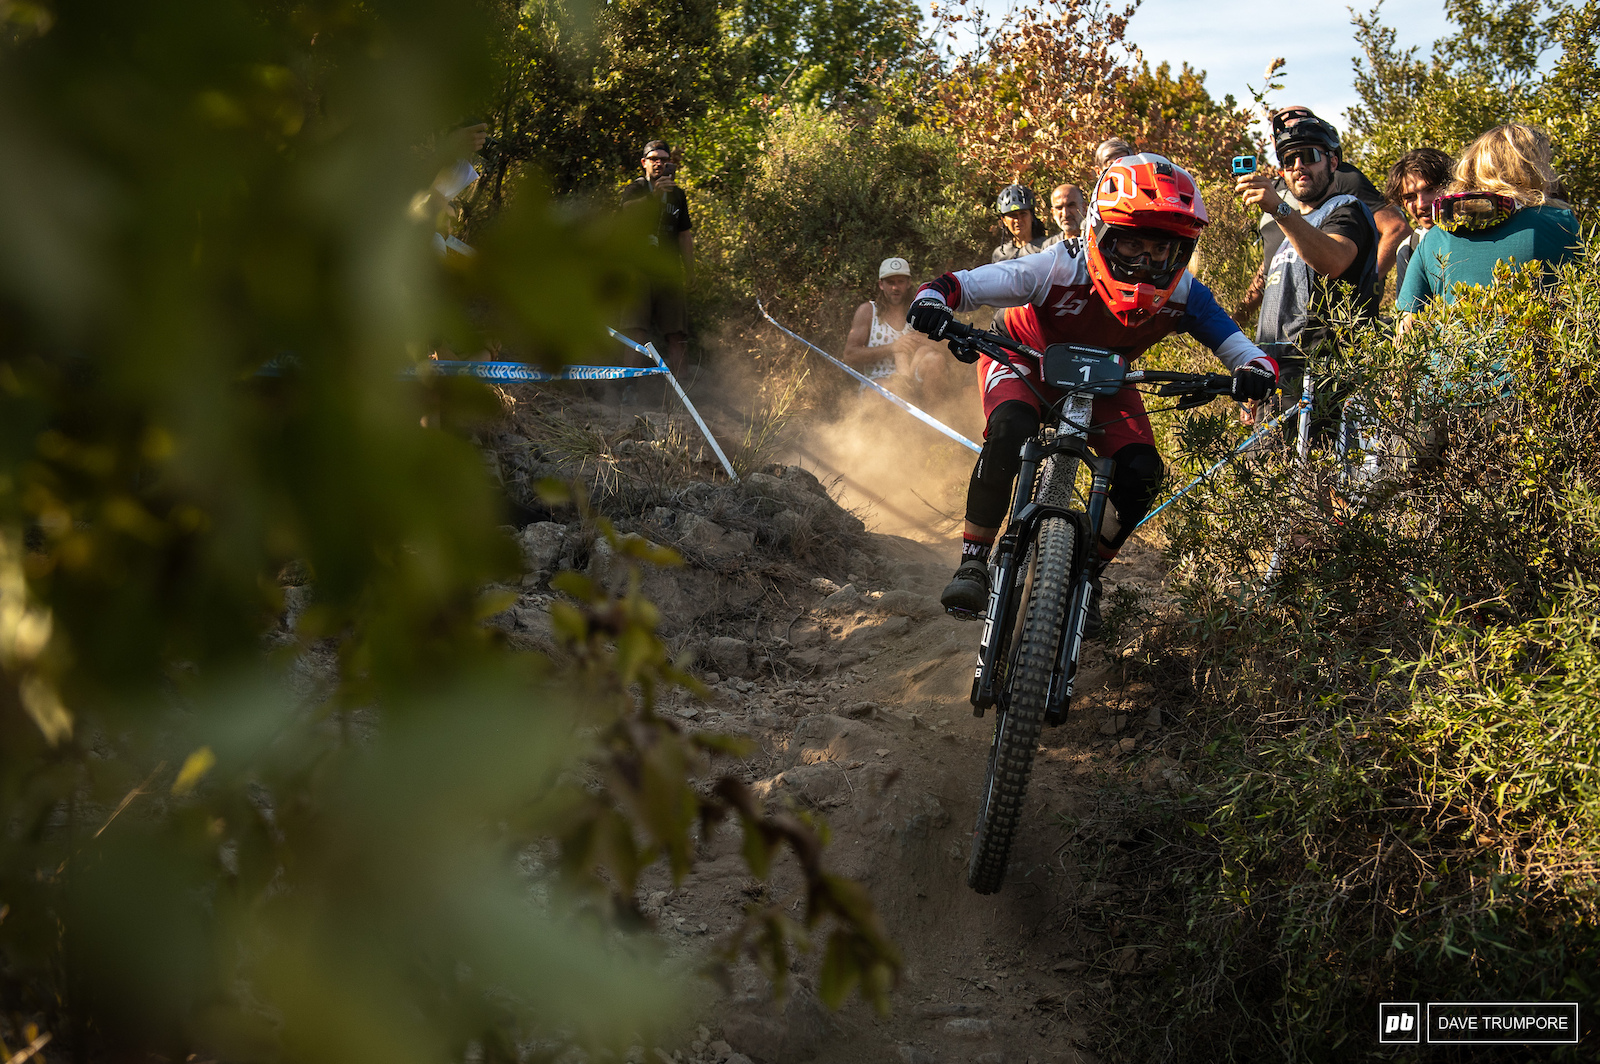 Isabeau Courdurier will be chasing after the overall podium this week